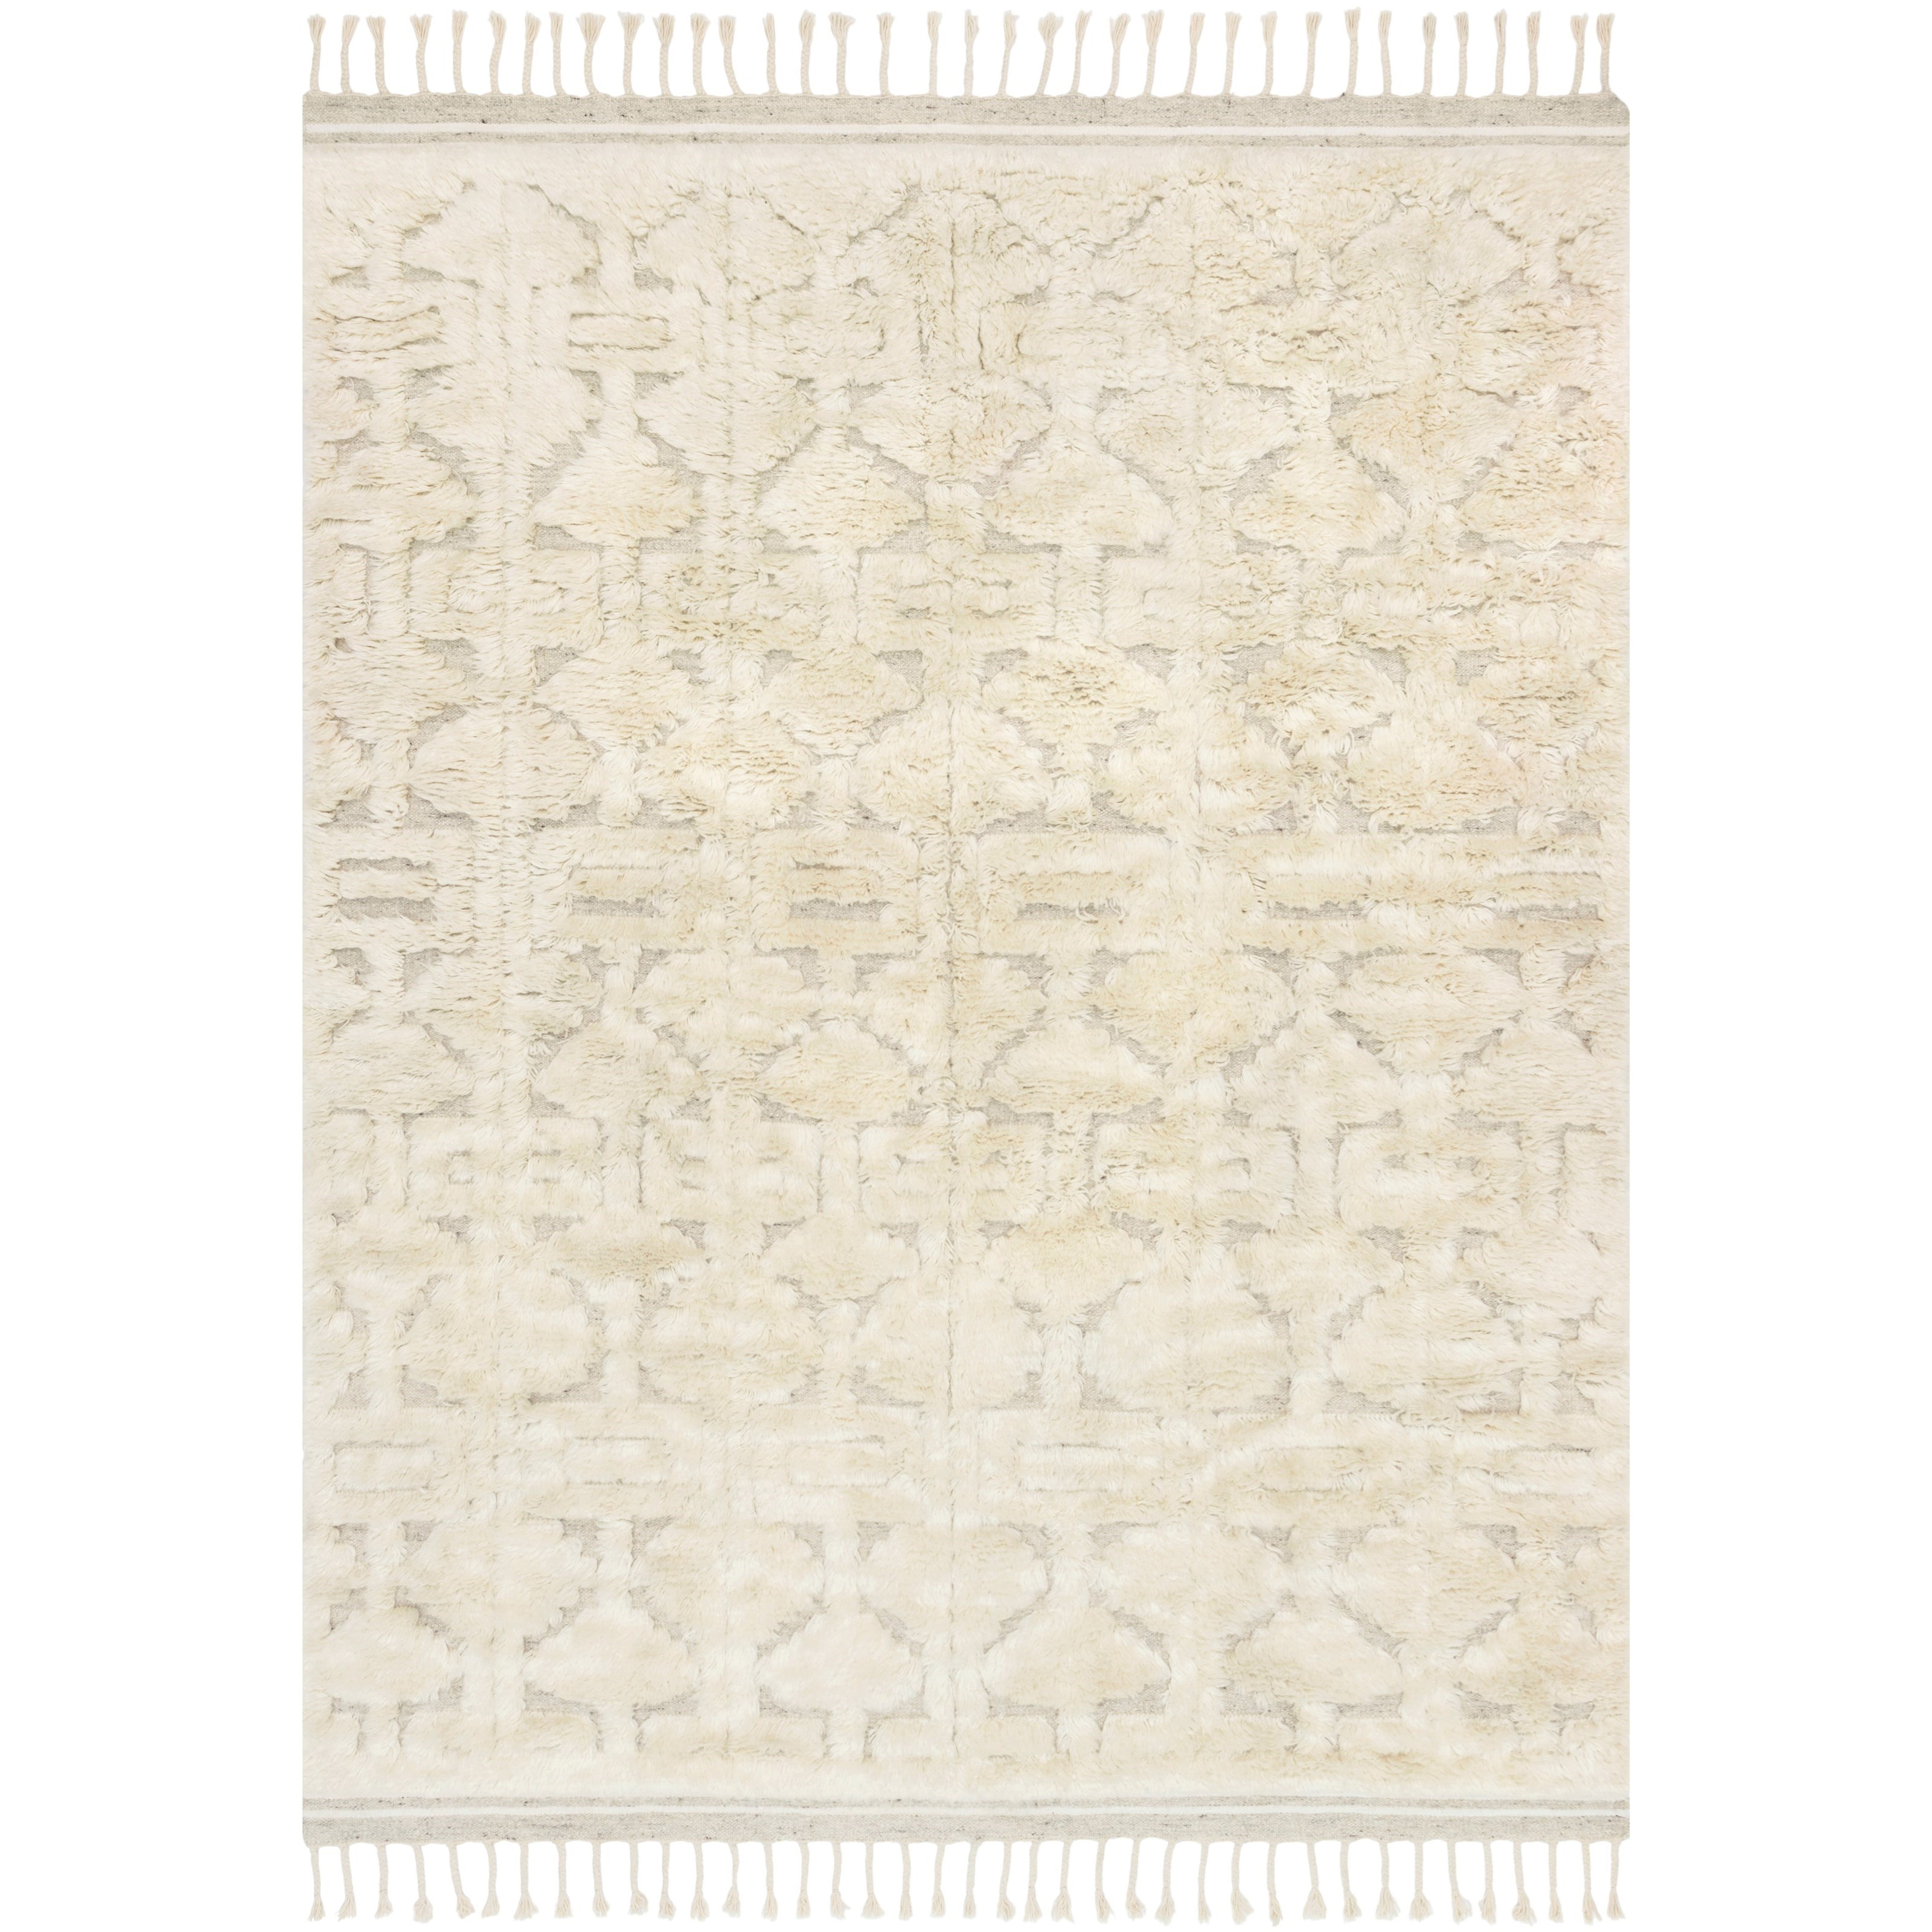 "Hygge 9'6"" x 13'6"" Oatmeal / Ivory Rug by Loloi Rugs at Belfort Furniture"